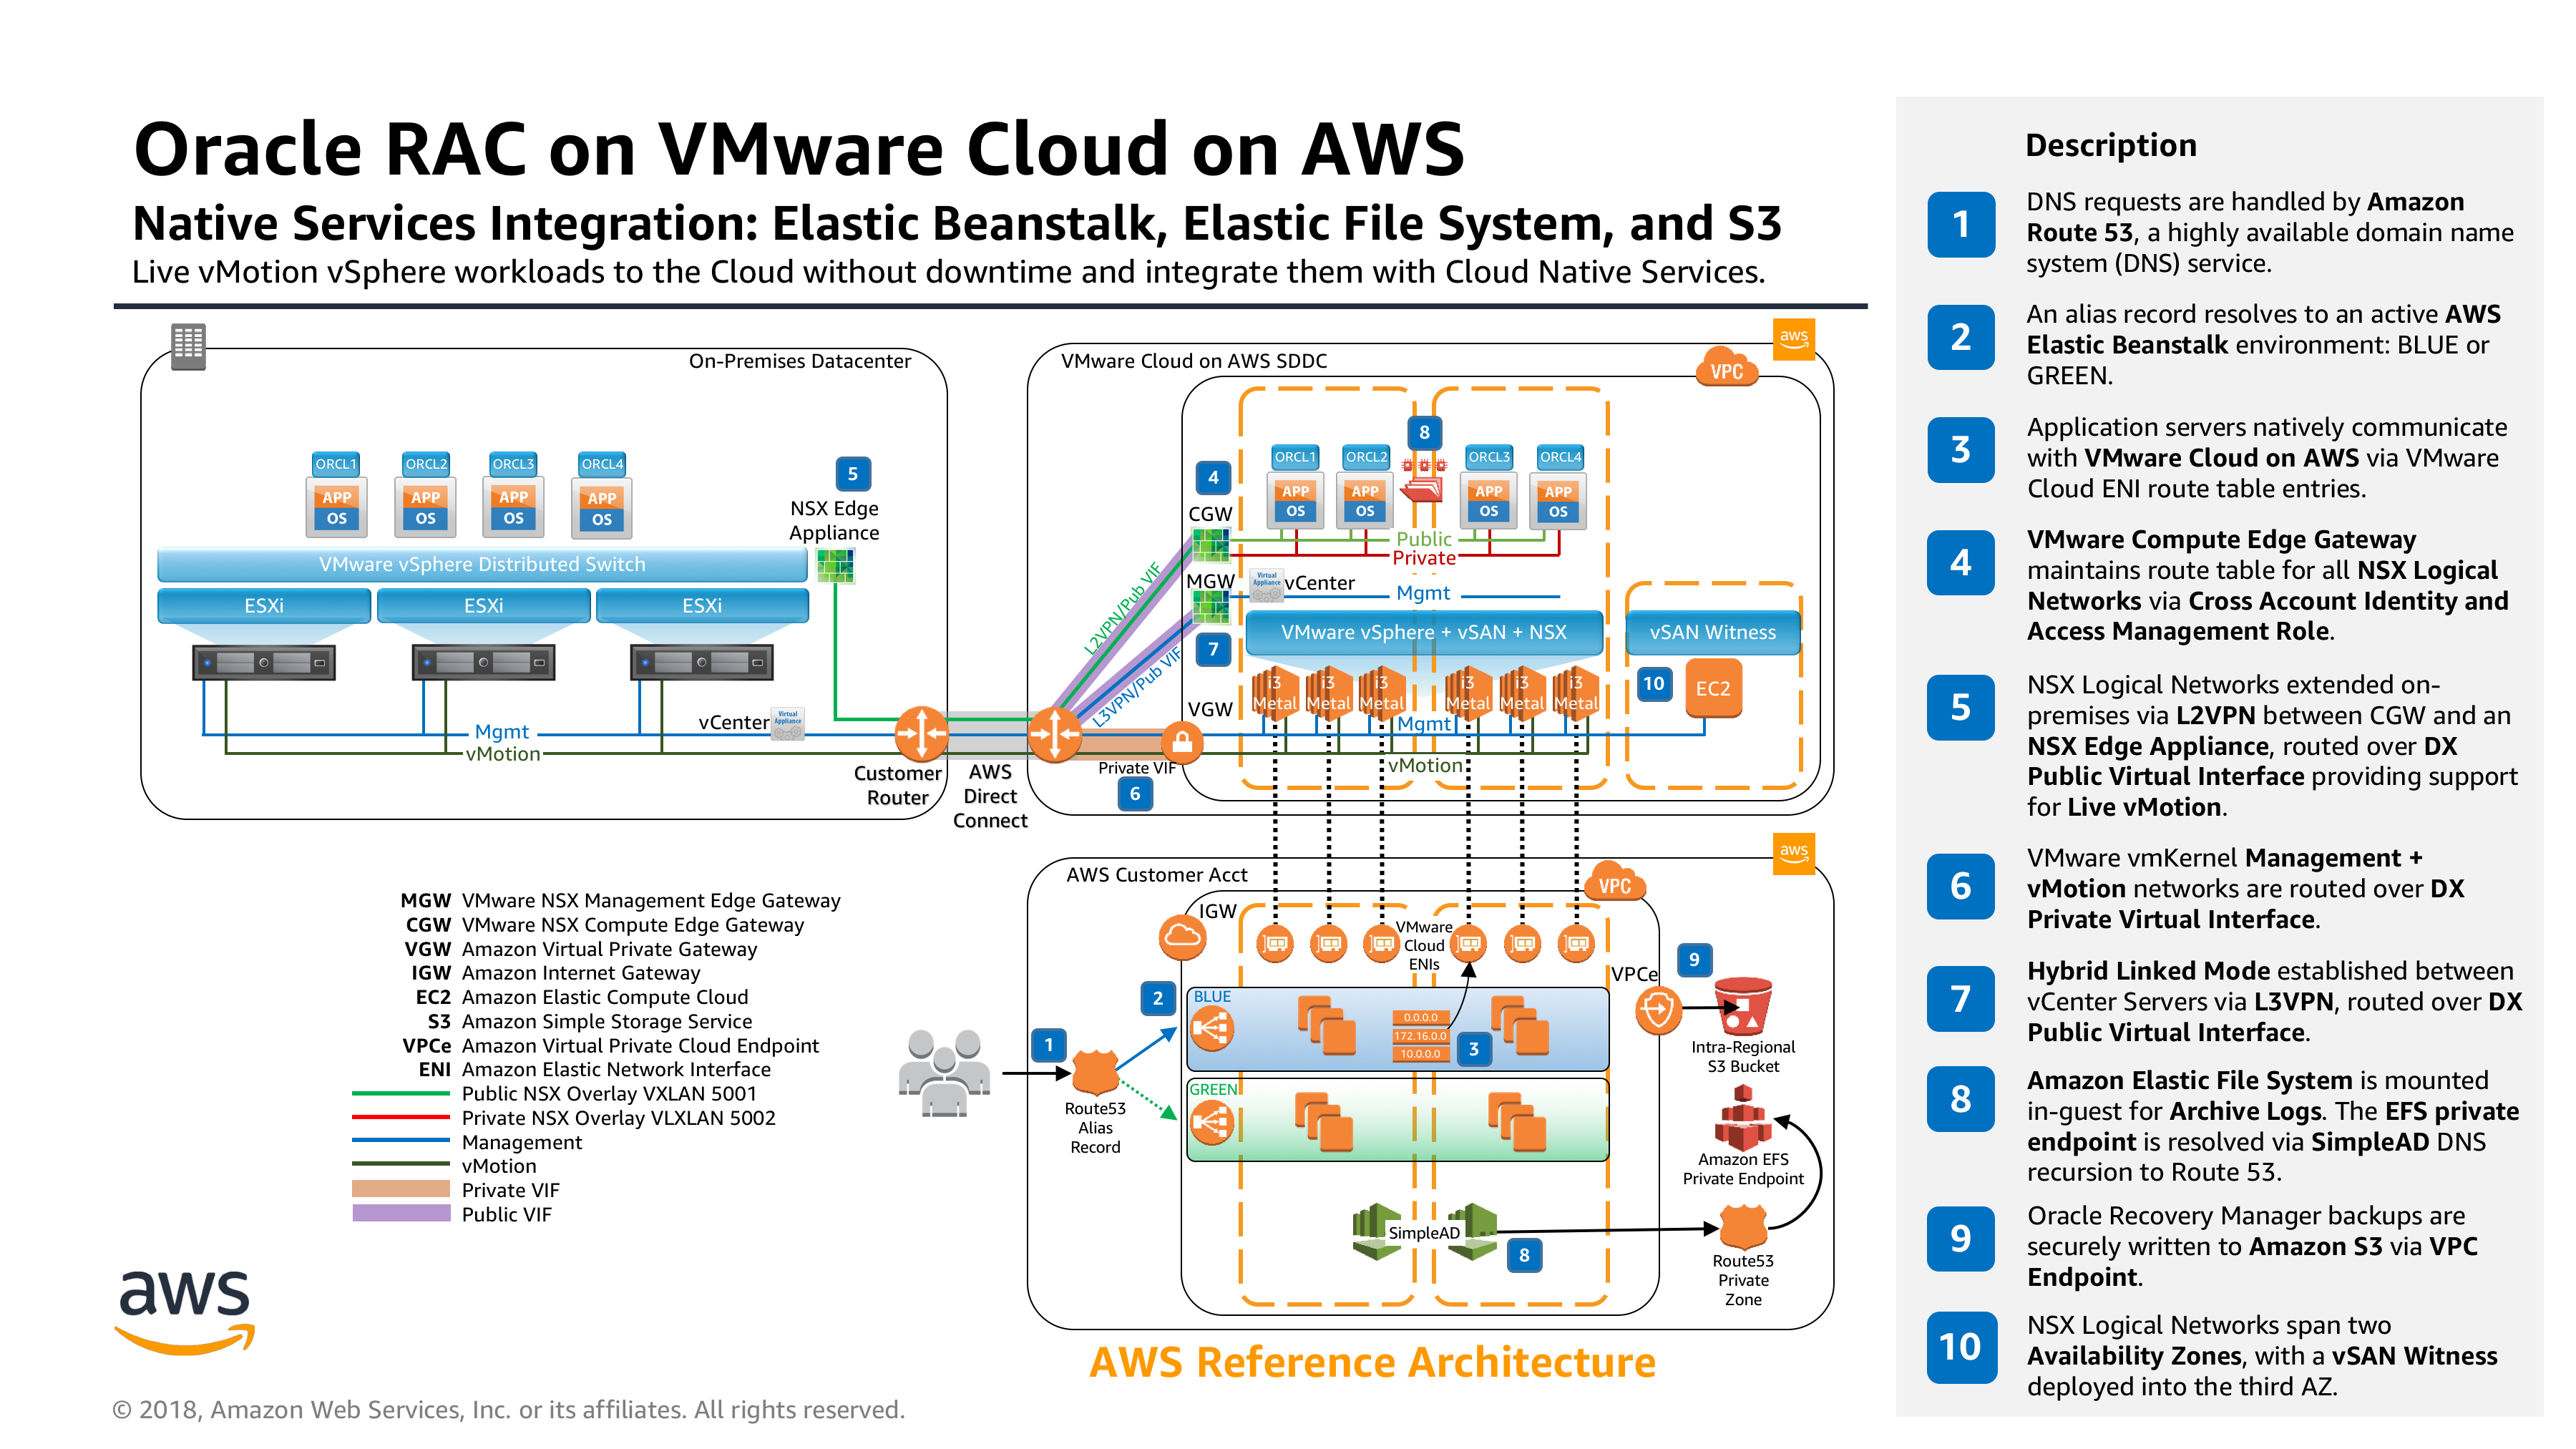 aws_reference_architecture_oracle_rac_on_vmware_cloud